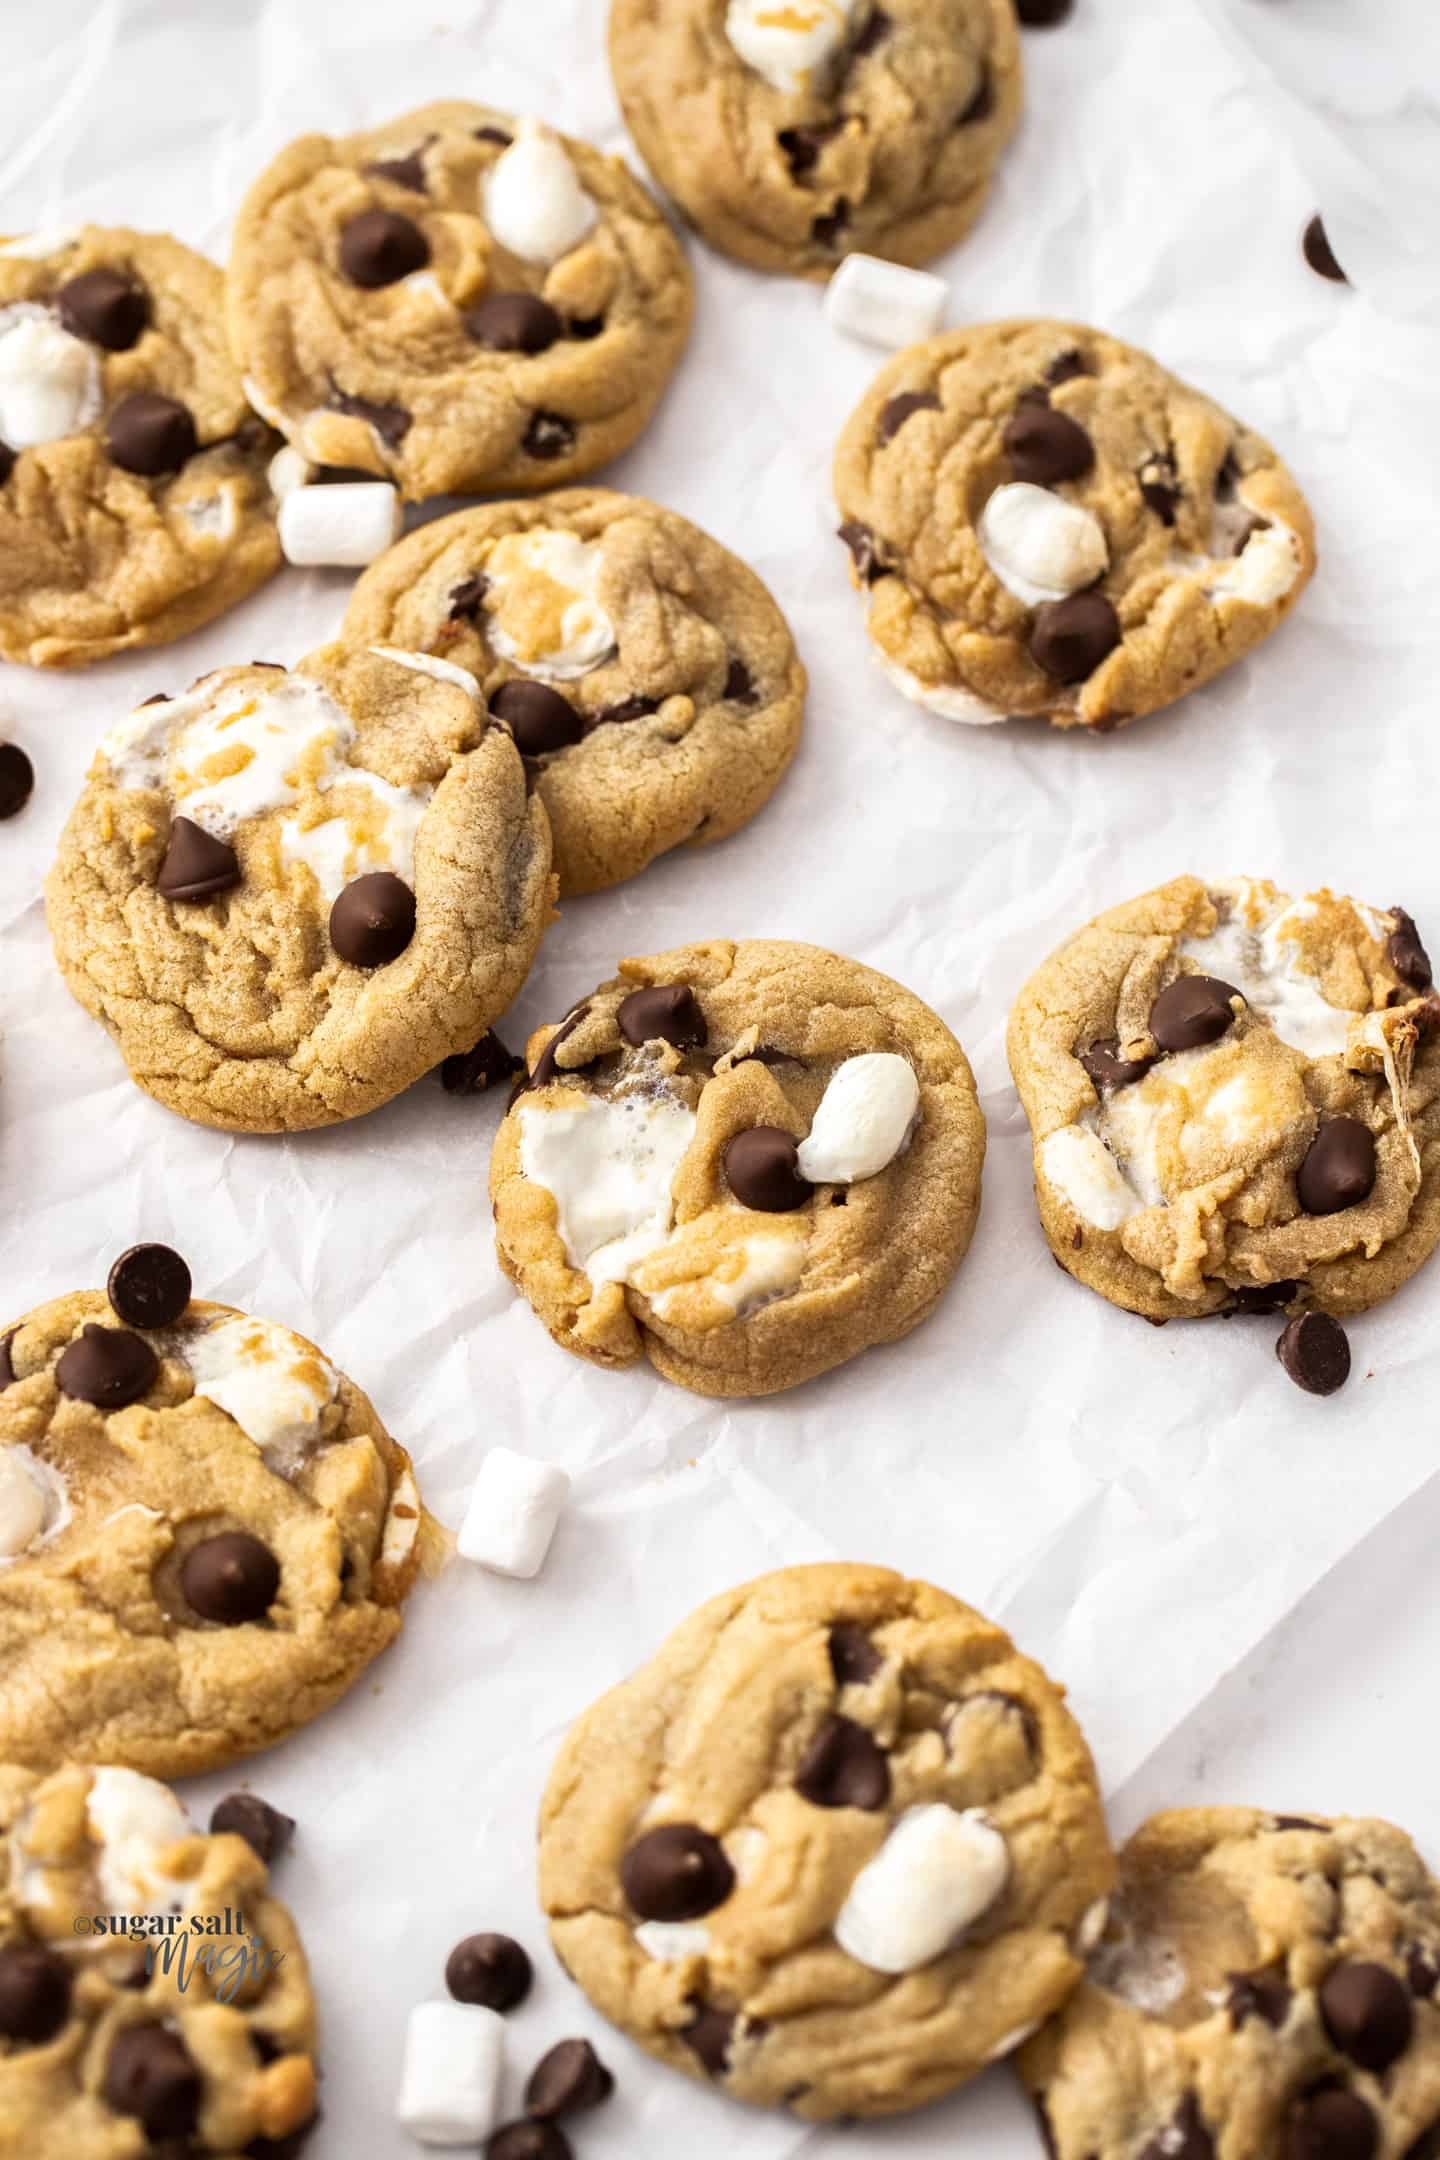 A batch of chocolate chip marshmallow cookies on a sheet of baking paper.